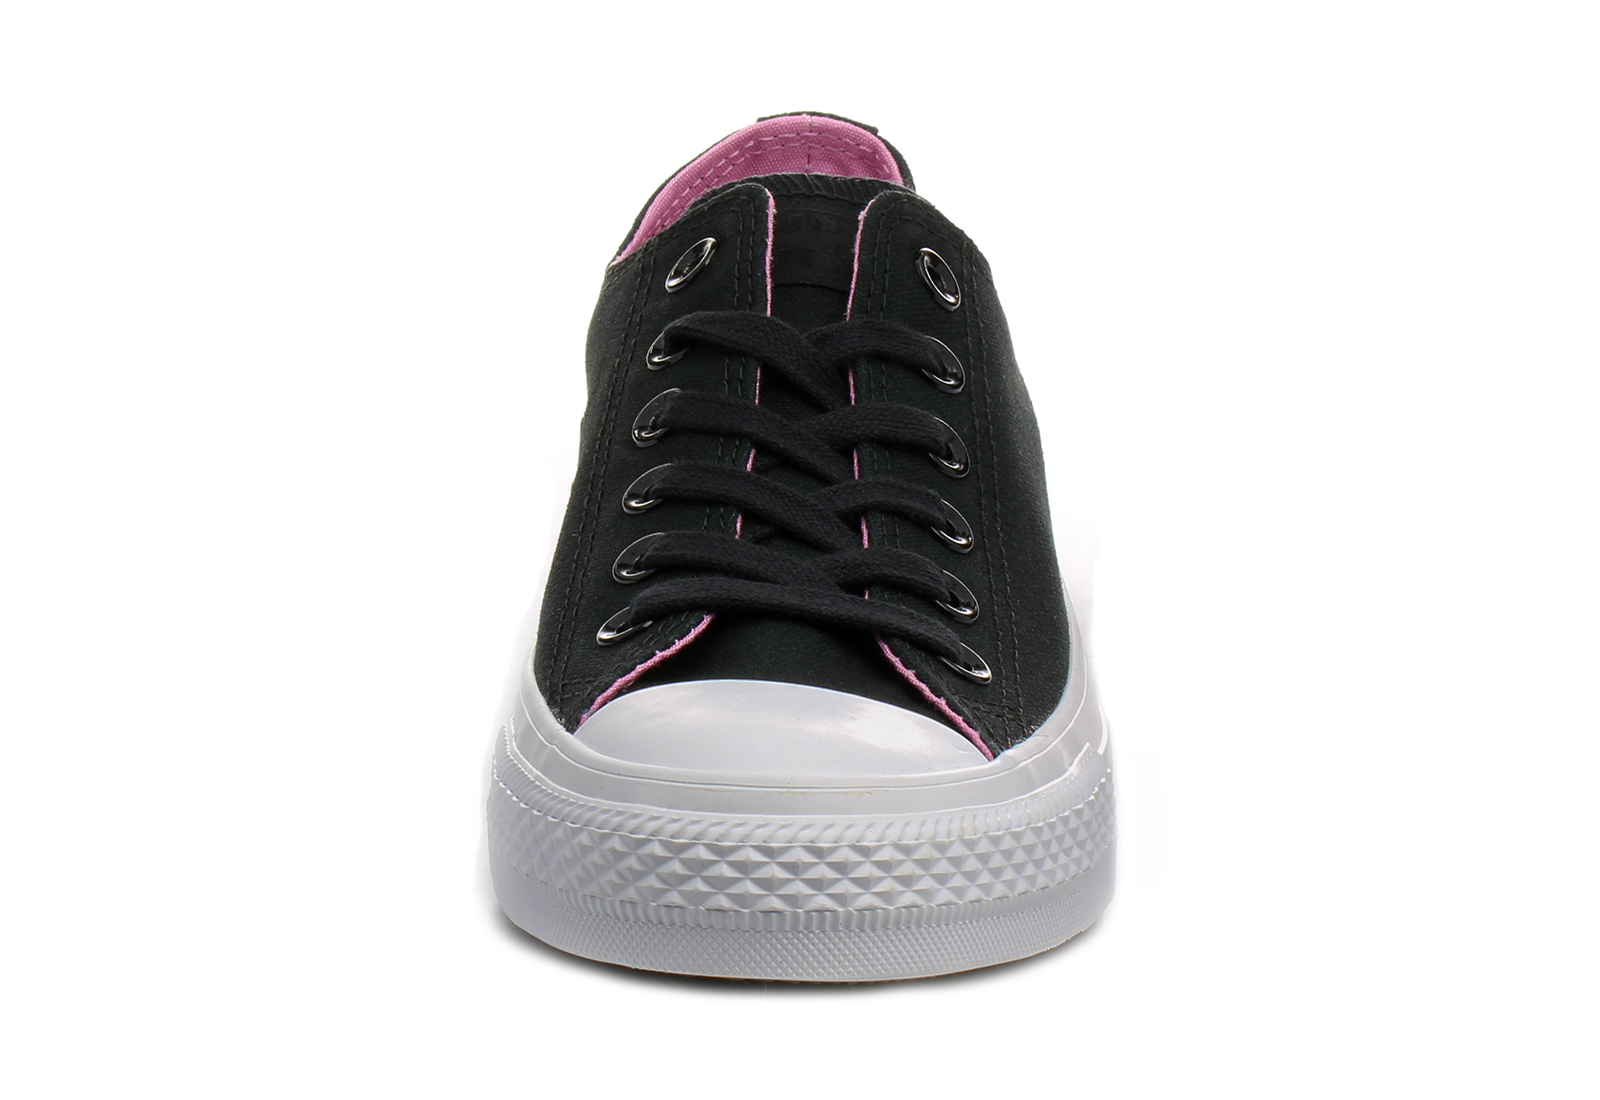 Converse Casual Crna Patike Chuck Taylor All Star Color Block Low Top Office Shoes Srbija